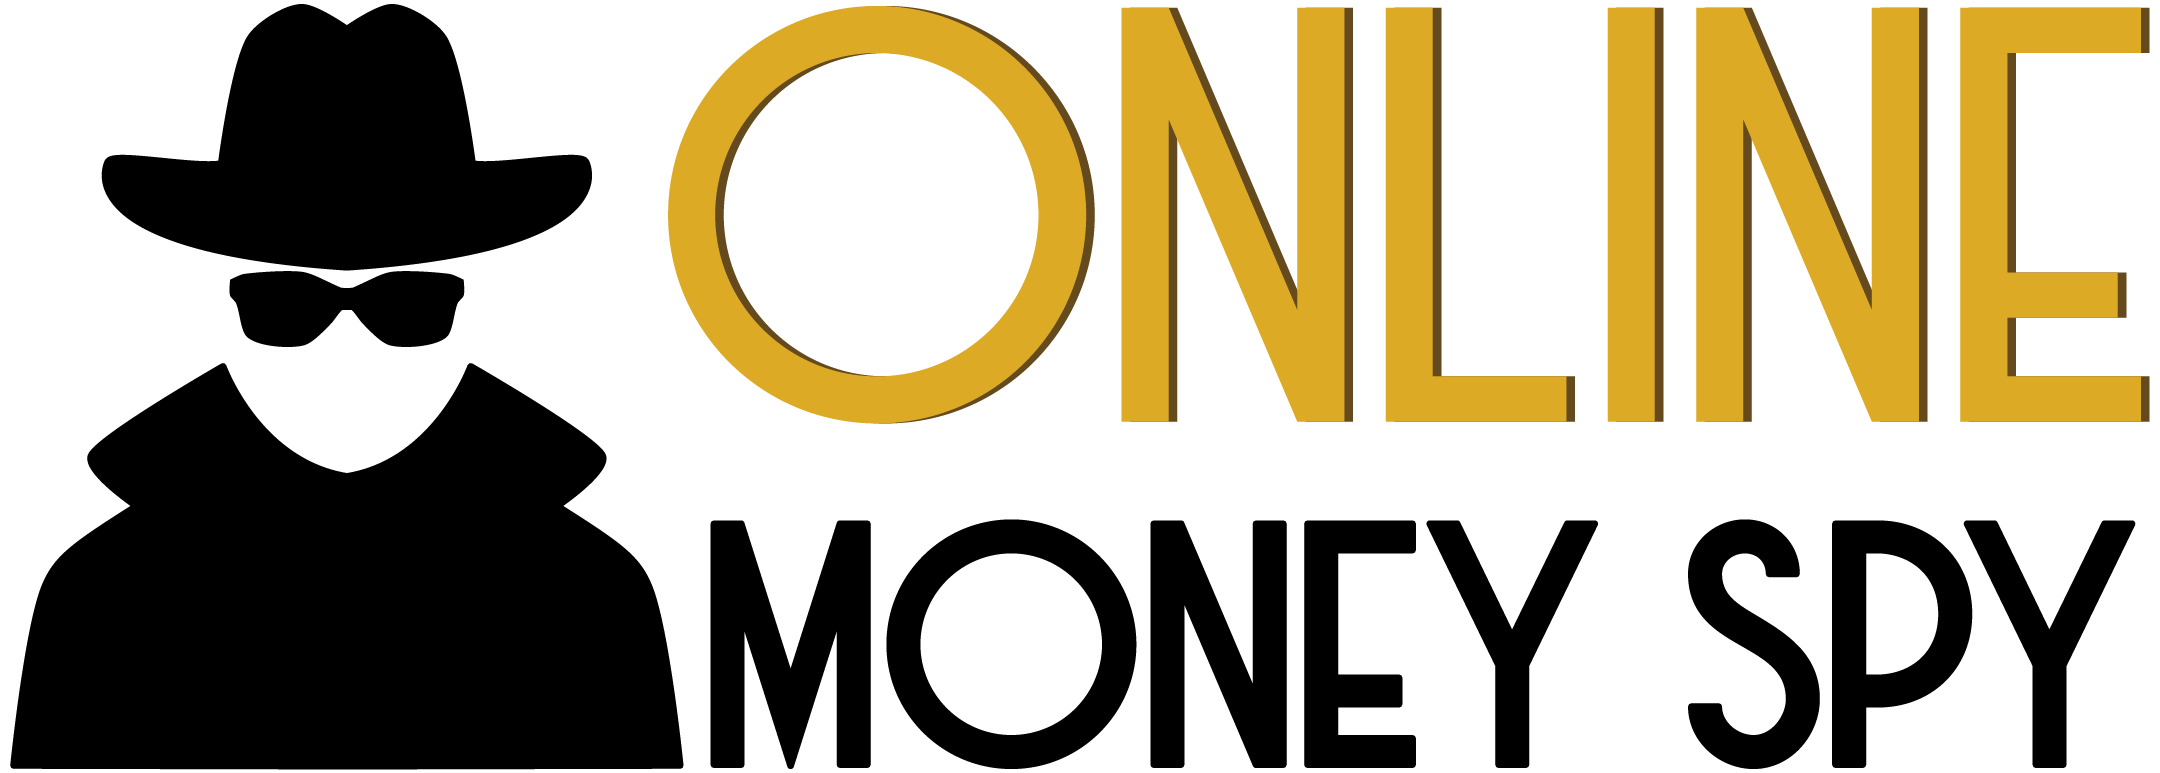 Online Money Spy